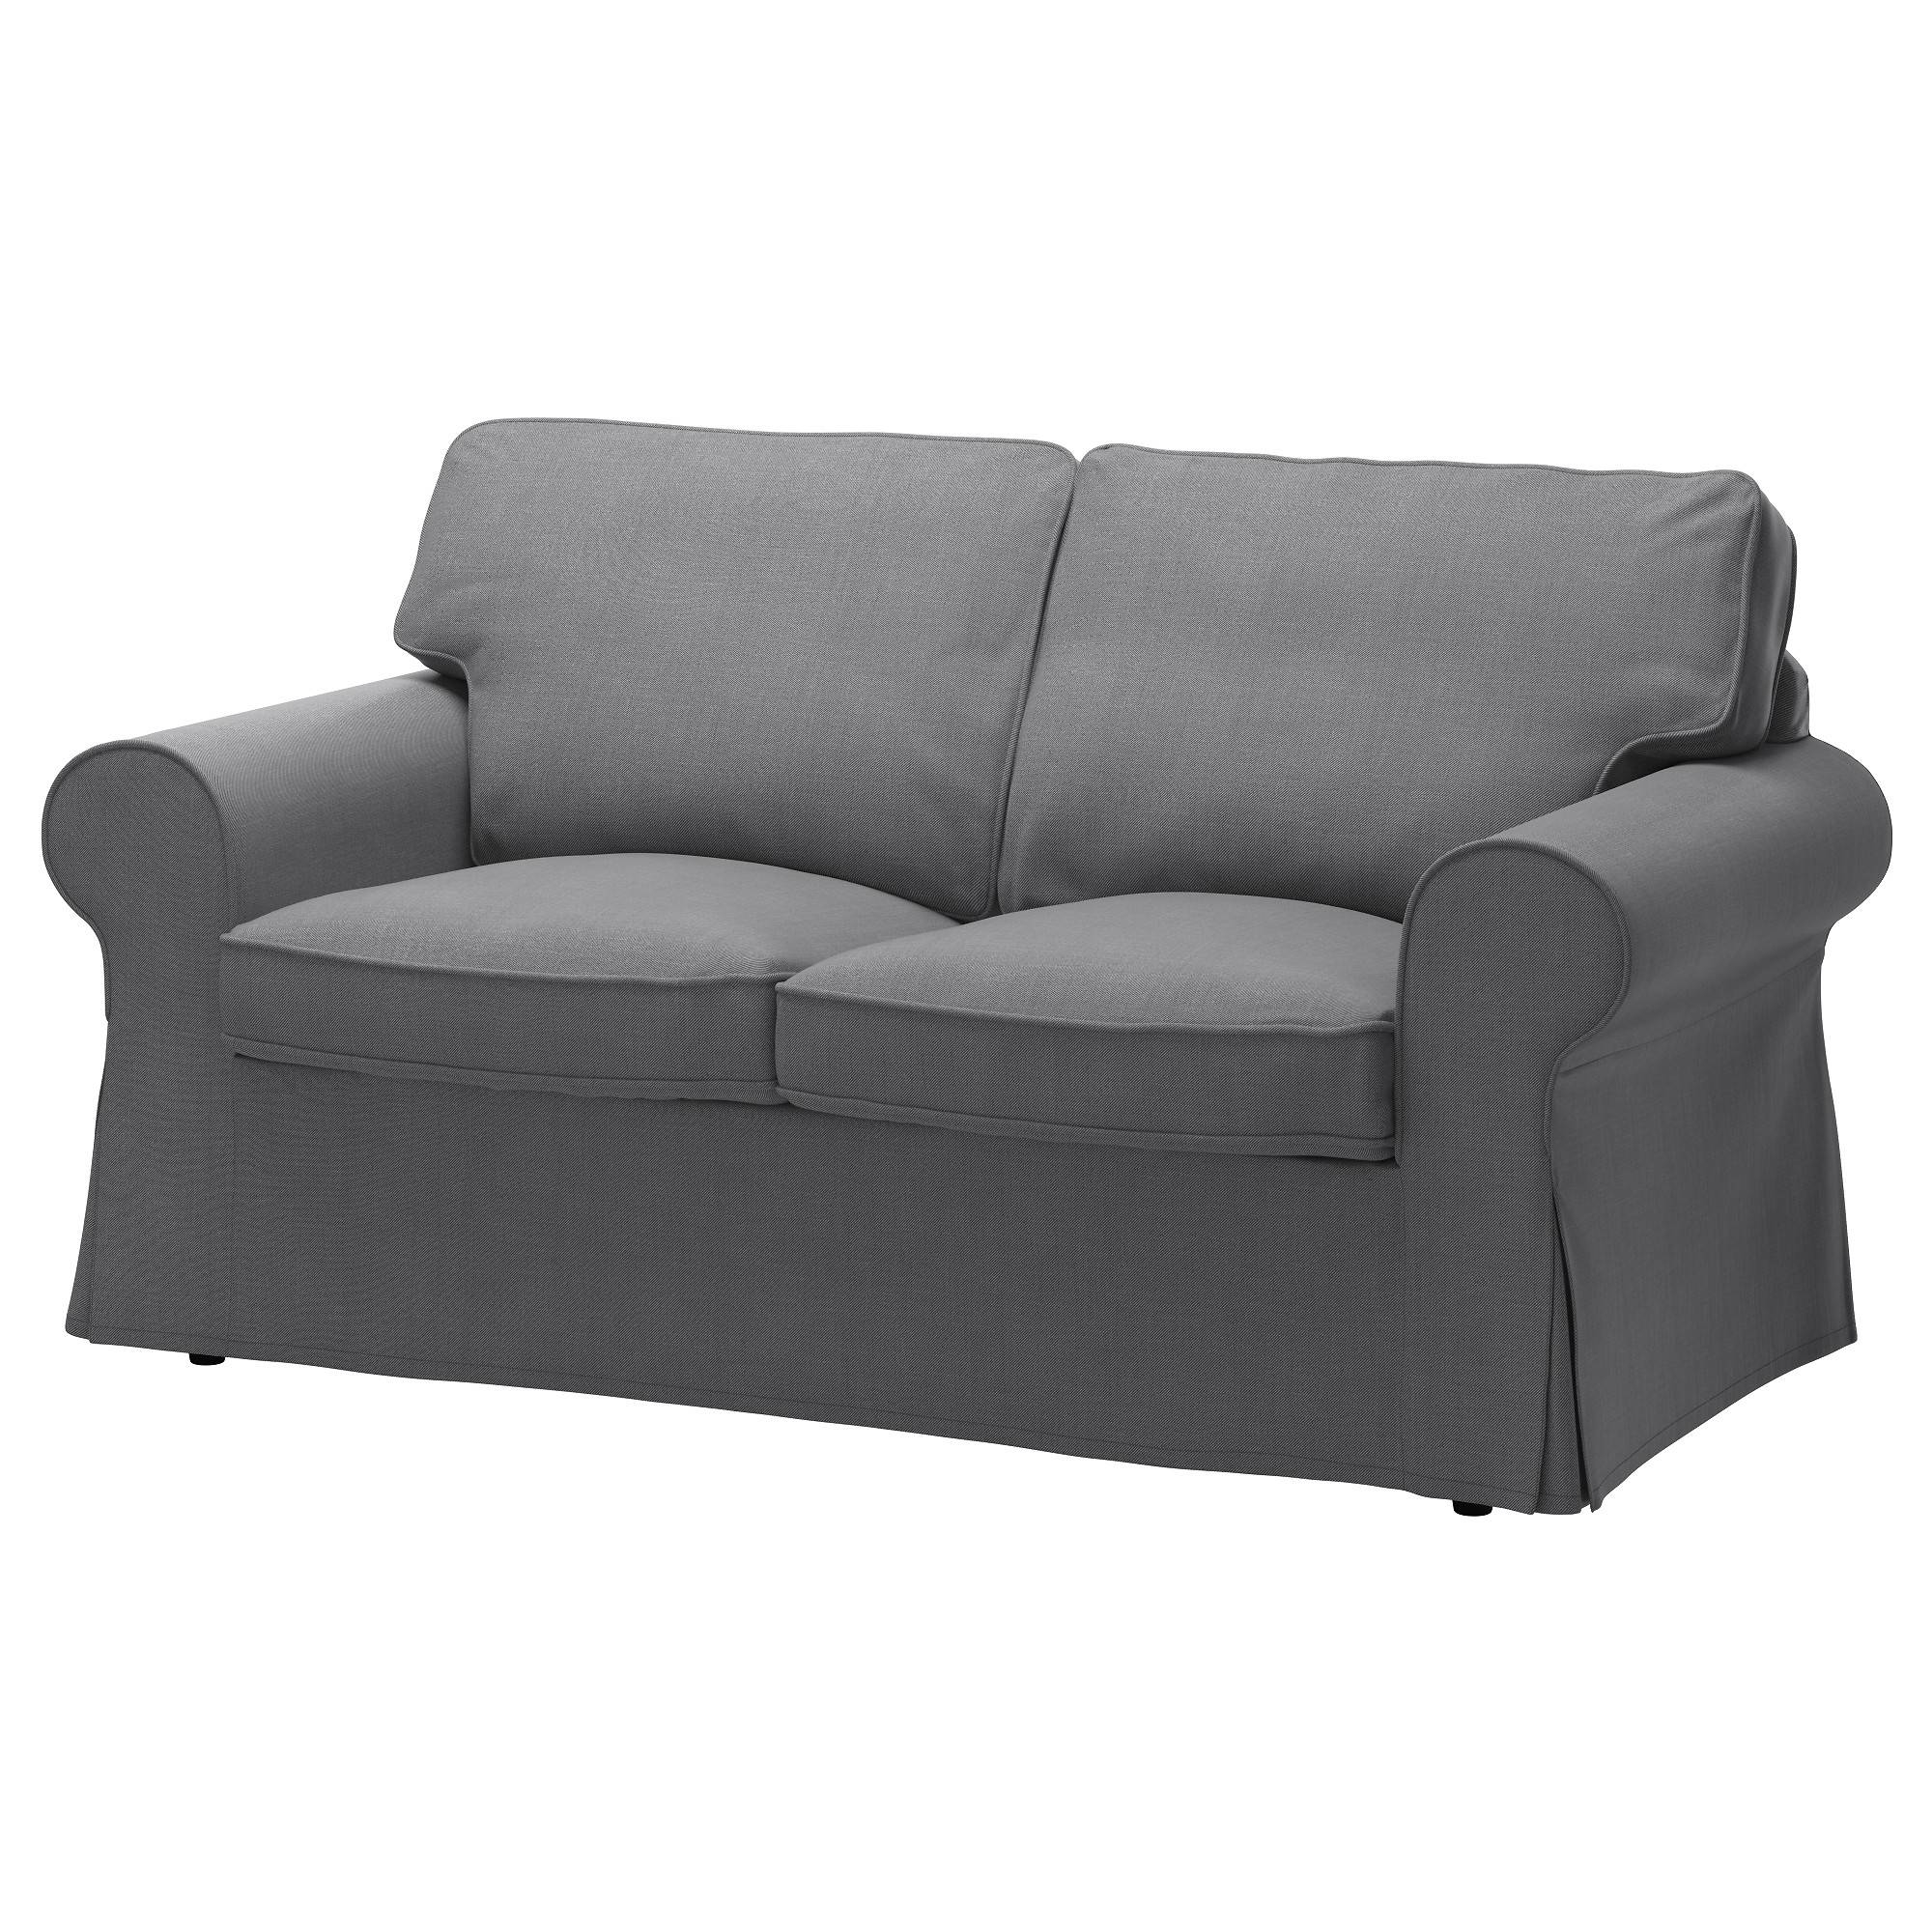 Ektorp - Ikea for Sofas With Removable Covers (Image 5 of 30)